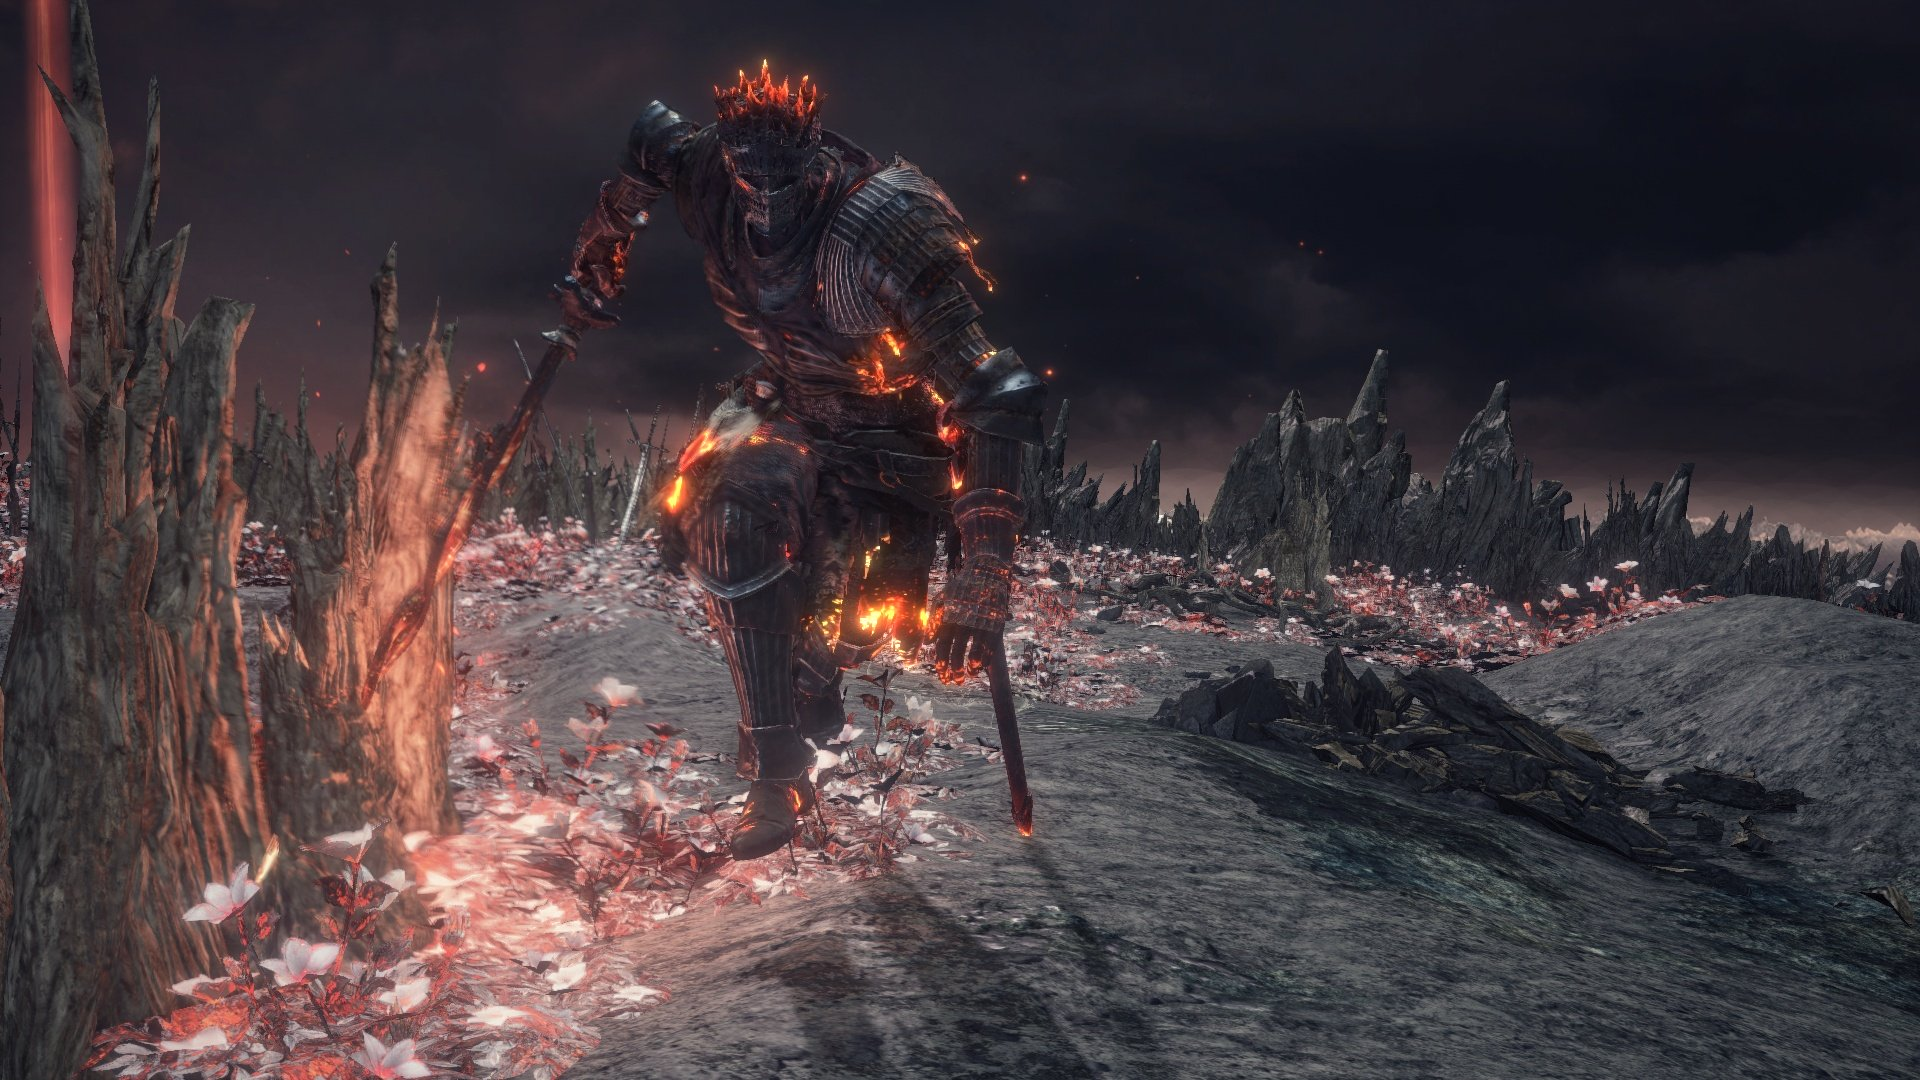 Dark Souls 3 Soul of Cinder boss fight